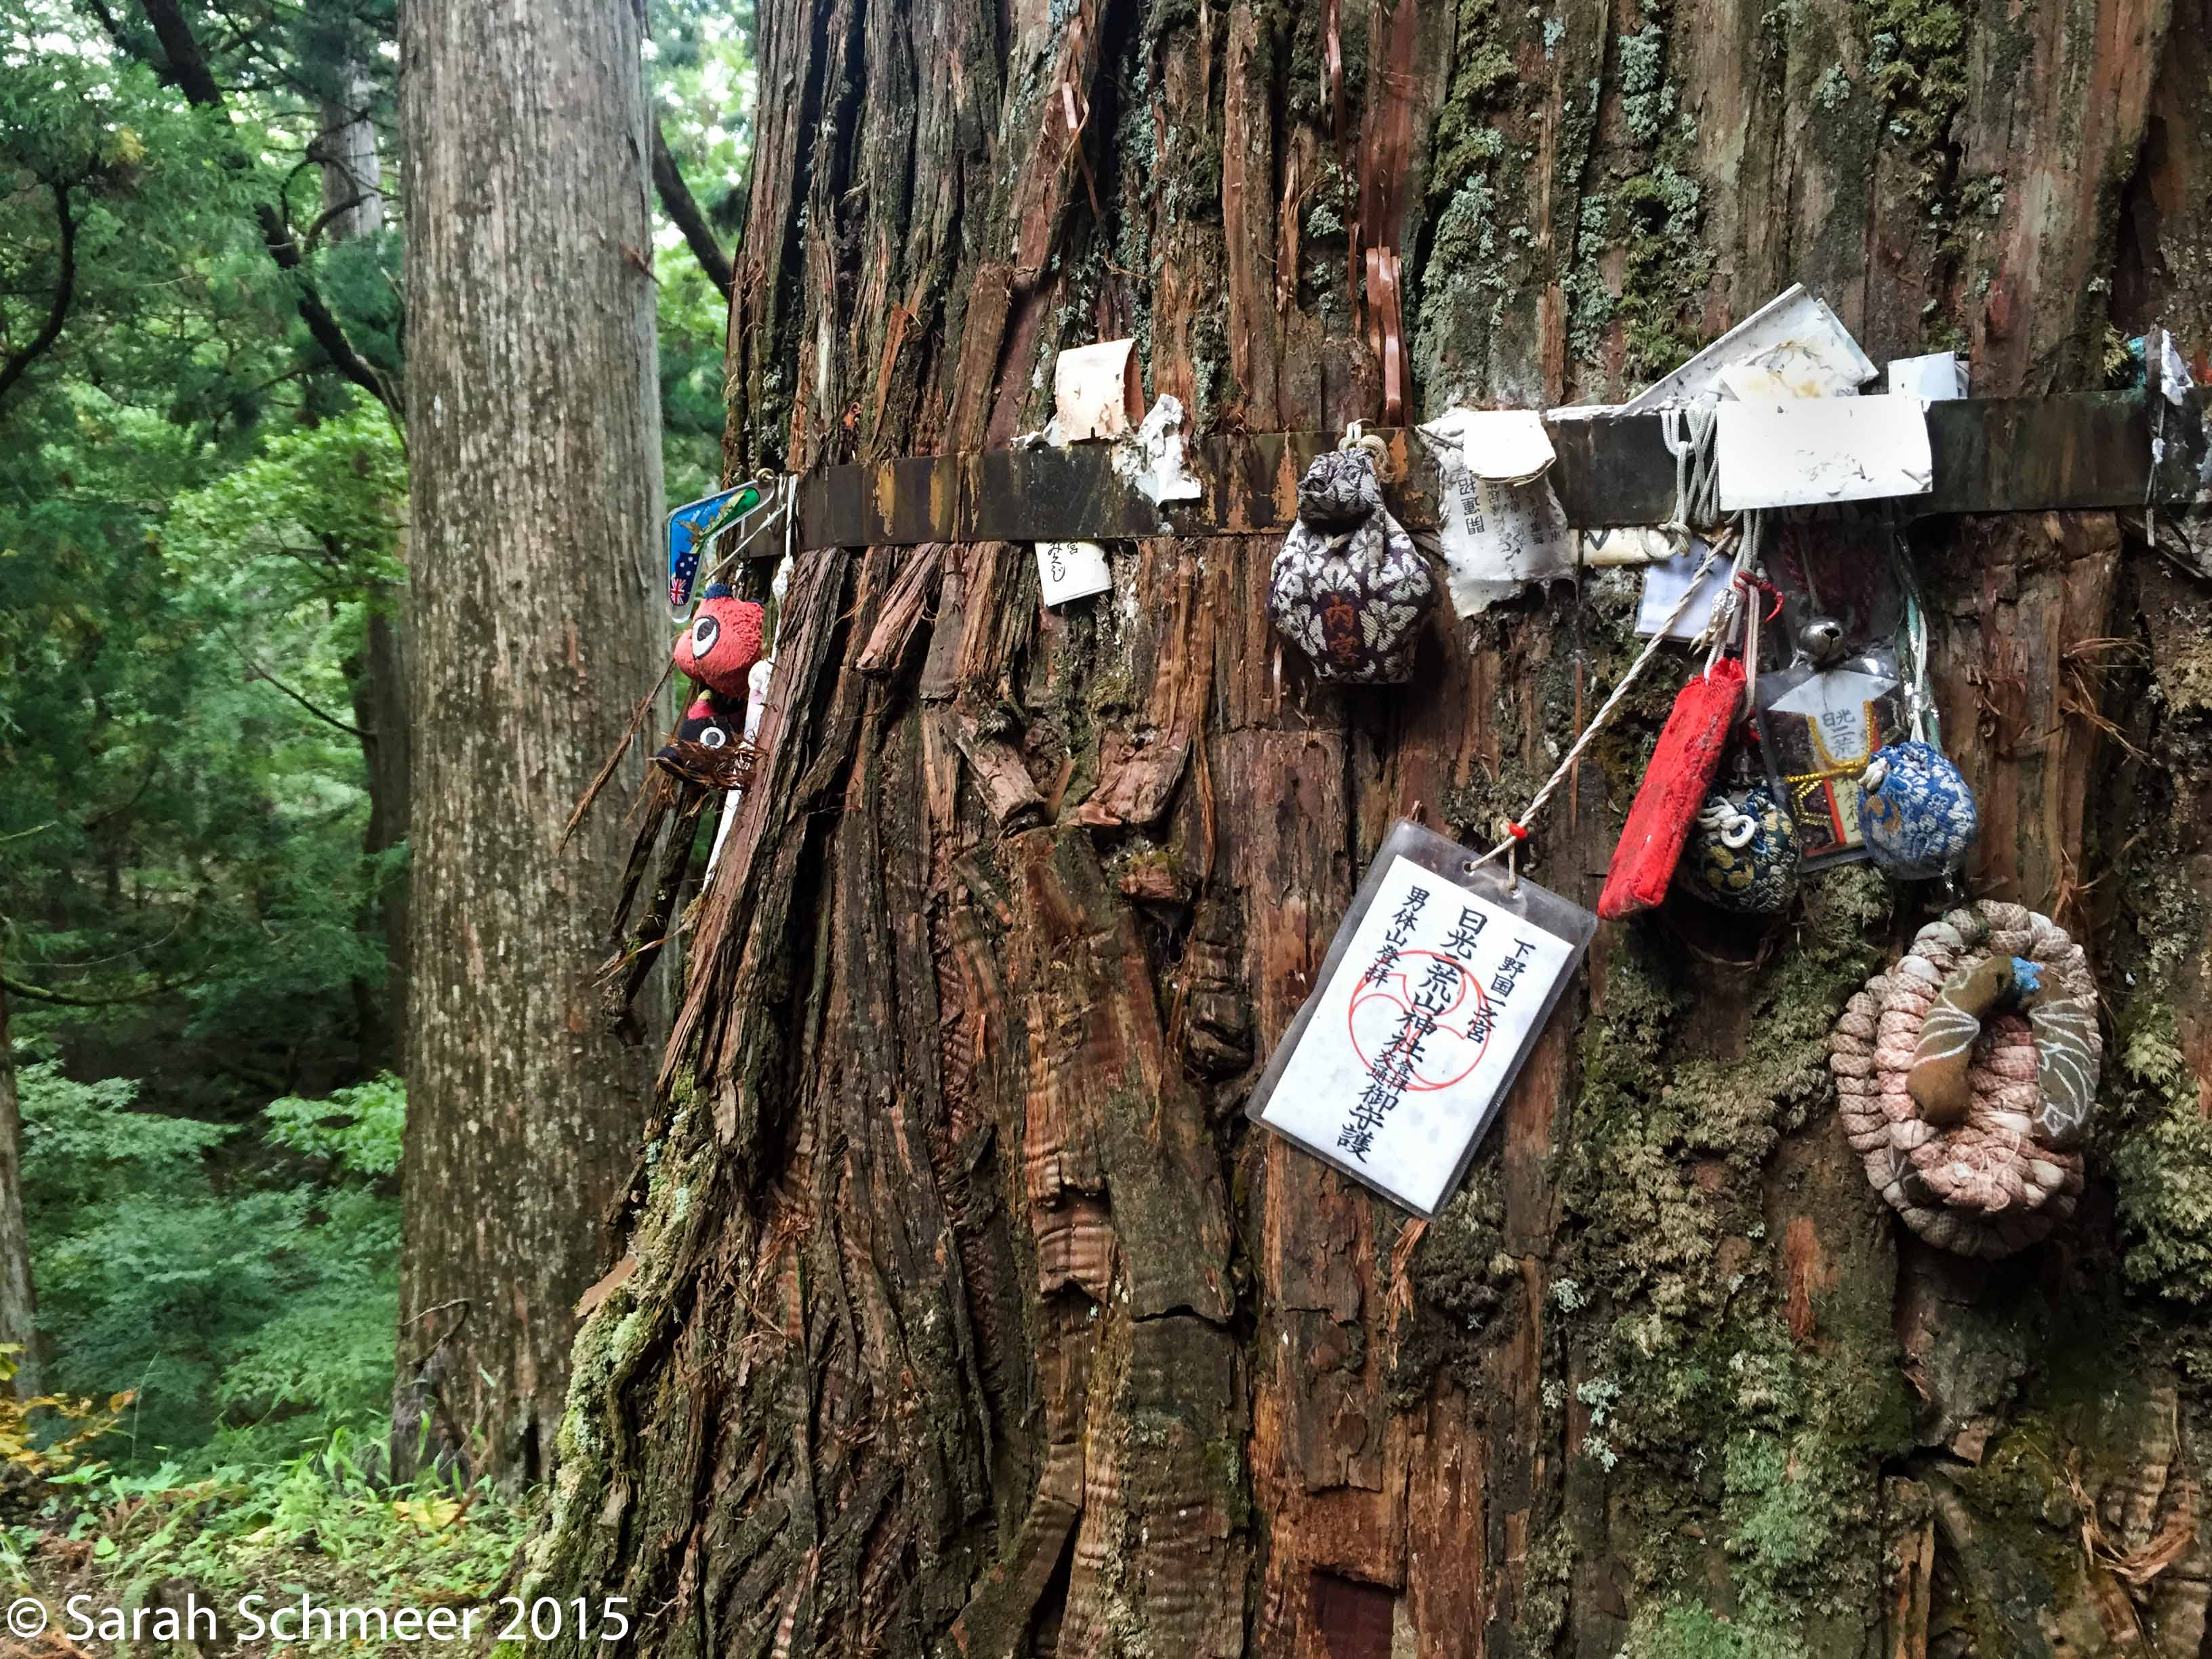 Prayers and totems tucked into a revered tree at a Shinto shrine in Nikko, Japan.